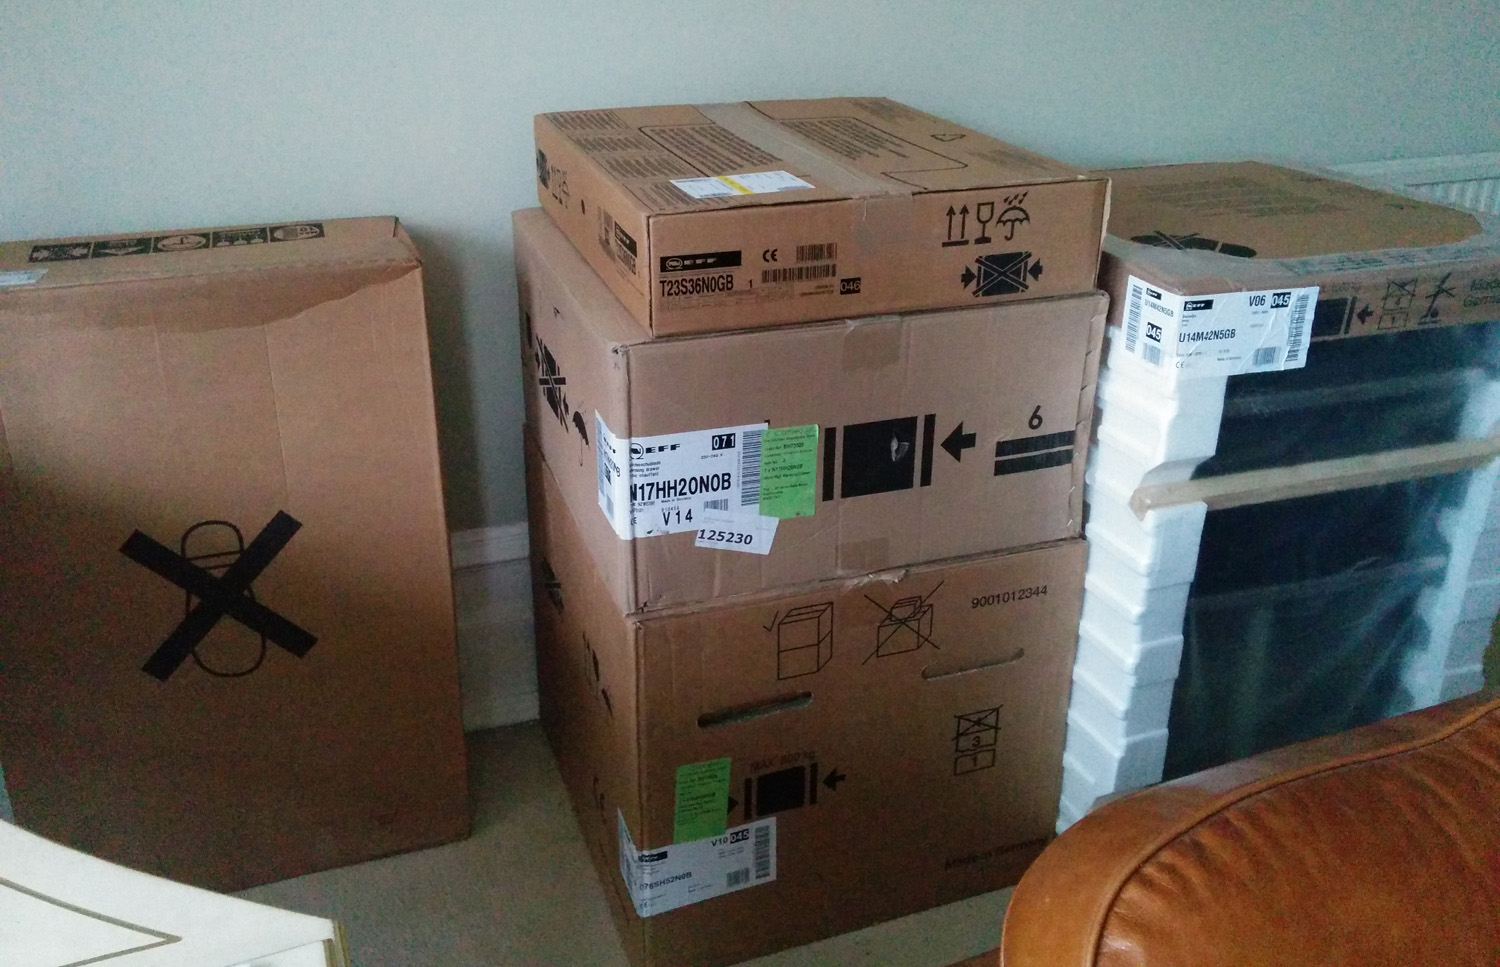 Appliances in their packaging